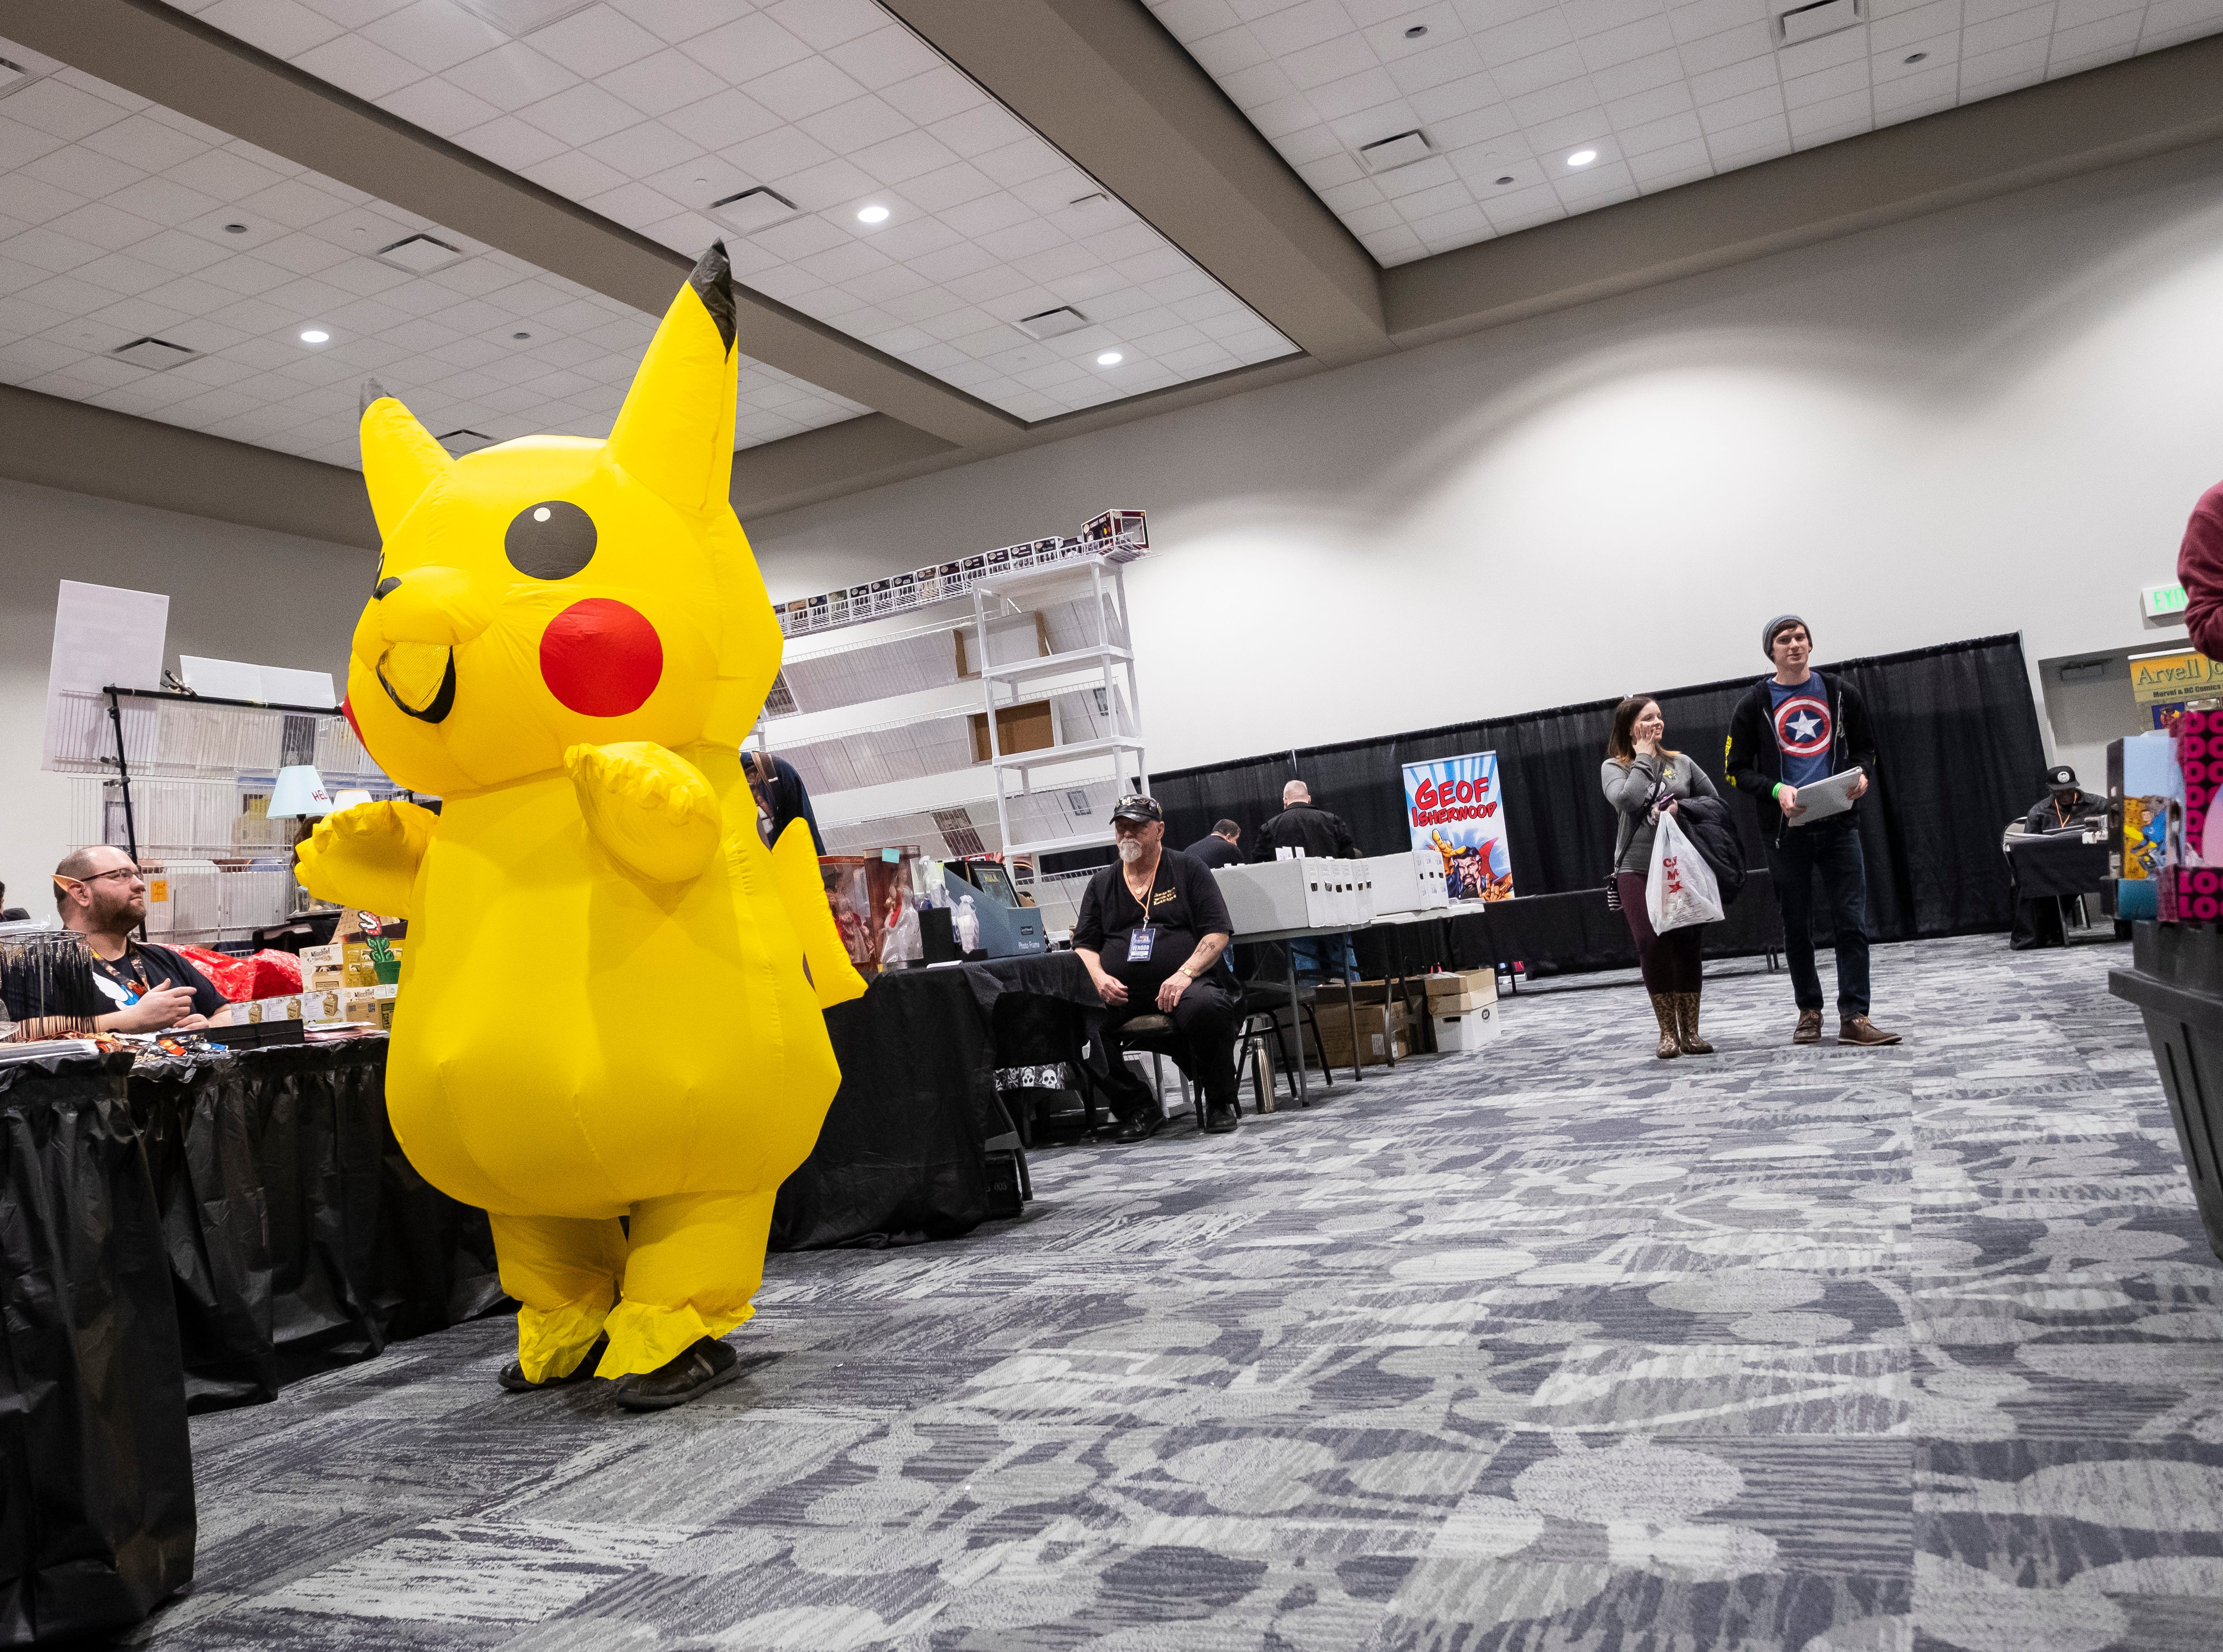 A vendor wearing an inflatable Pikachu costume paces near their booth Saturday, March 30, 2019 during Blue Water International Comic-Con.